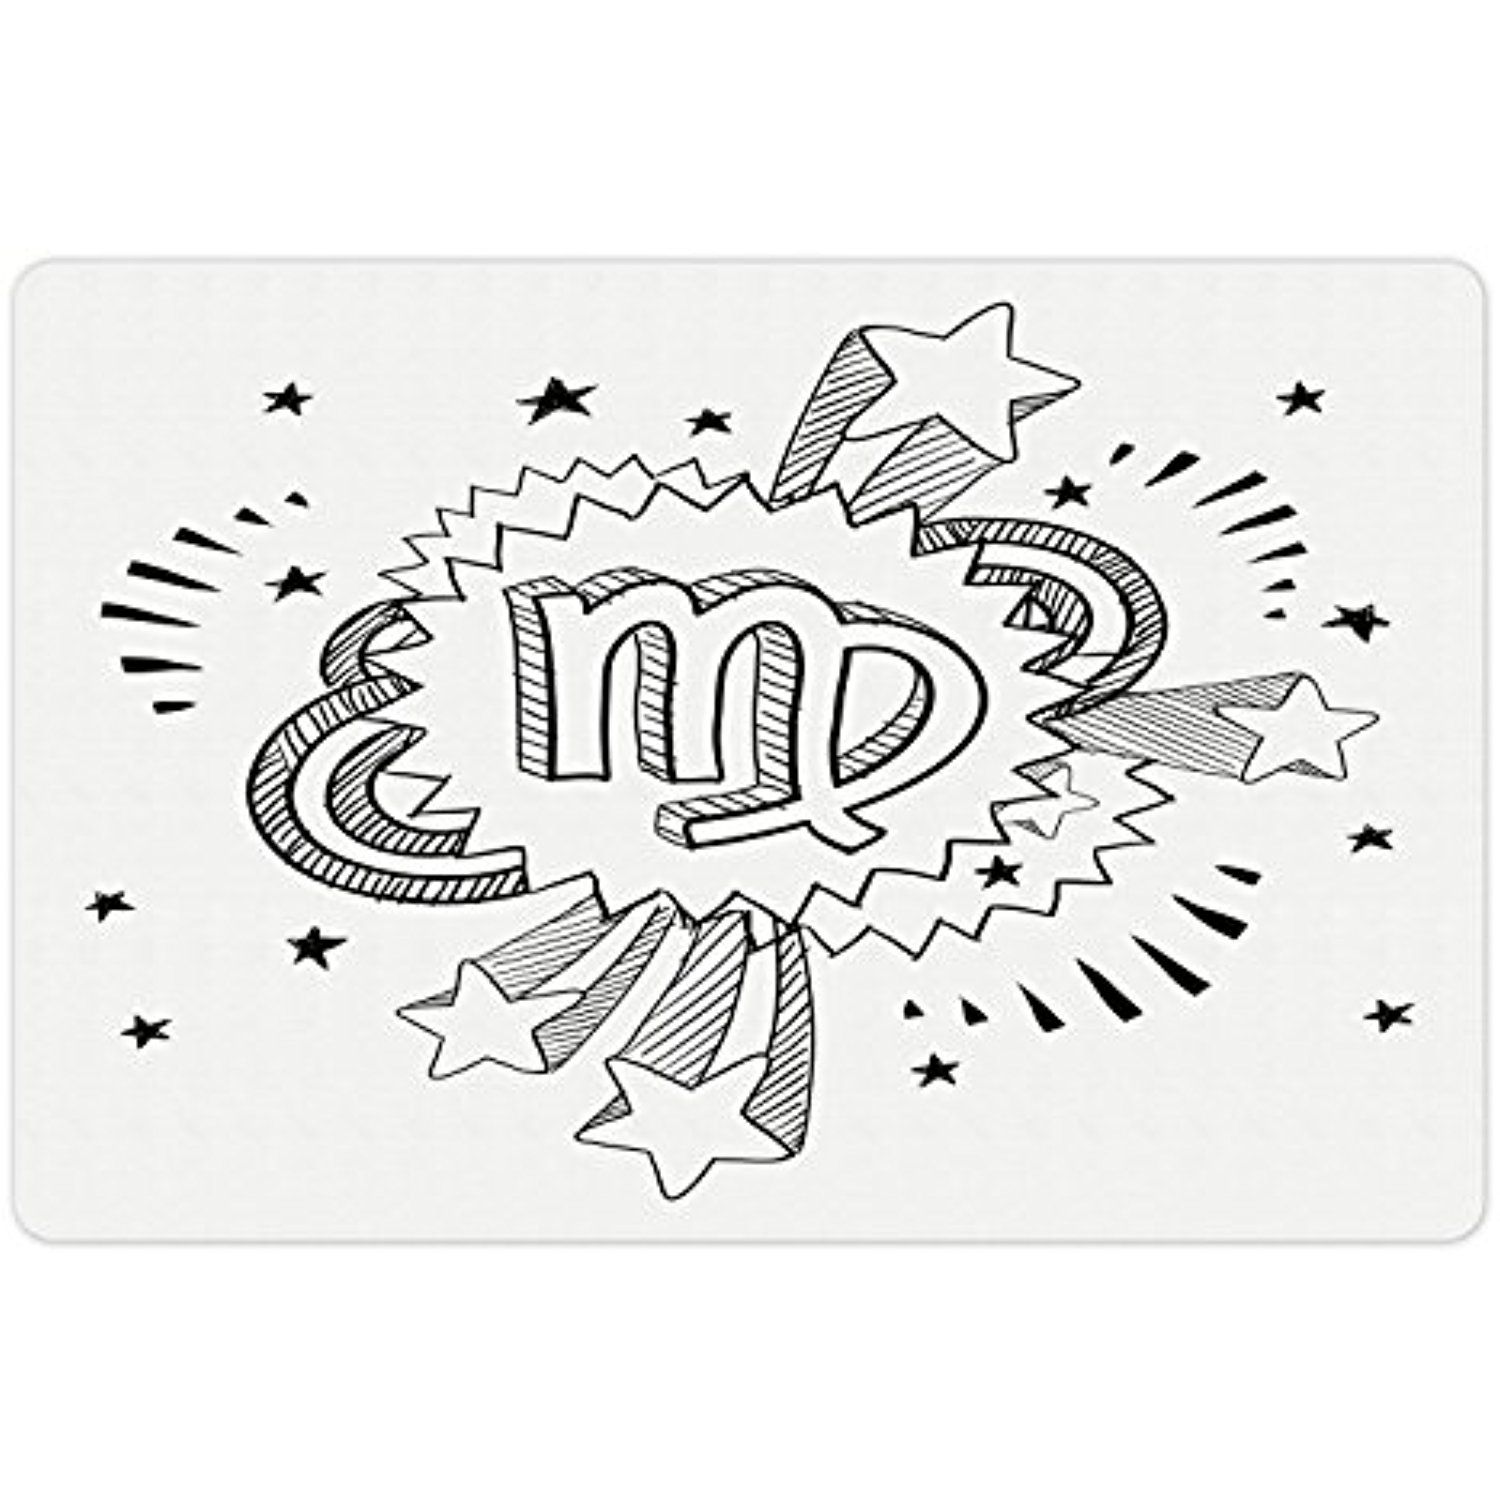 zodiac virgo pet mats for food and water by ambesonne doodle style 1970 Men Accessories zodiac virgo pet mats for food and water by ambesonne doodle style astrology symbol on 1960s 1970s pop explosion background rectangle non slip rubber mat